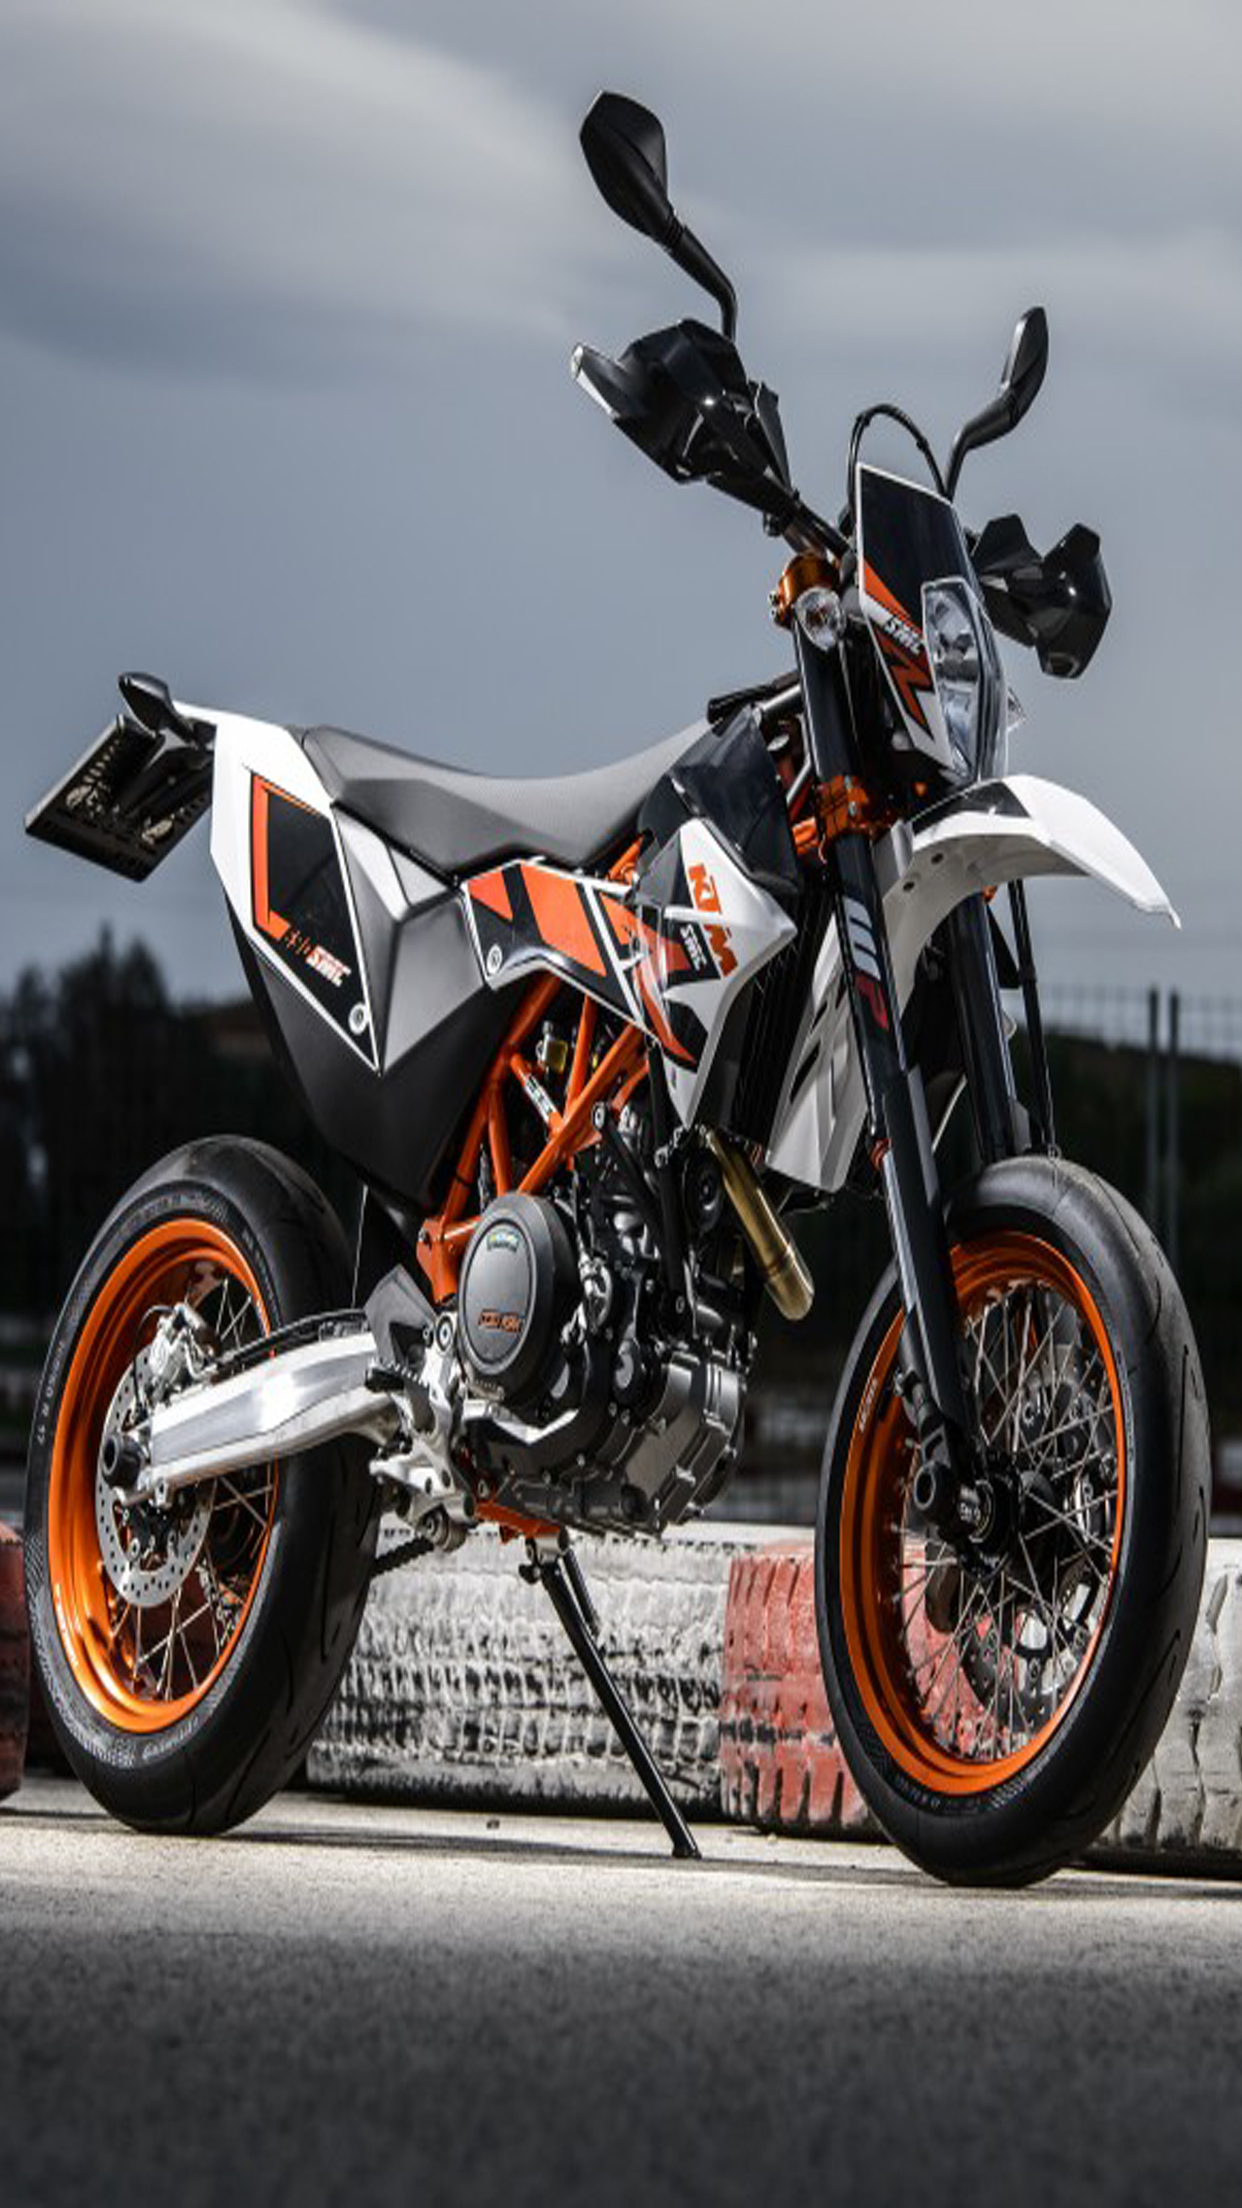 ktm 690 smc r 3 wallpaper for iphone x 8 7 6 free download on 3wallpapers. Black Bedroom Furniture Sets. Home Design Ideas